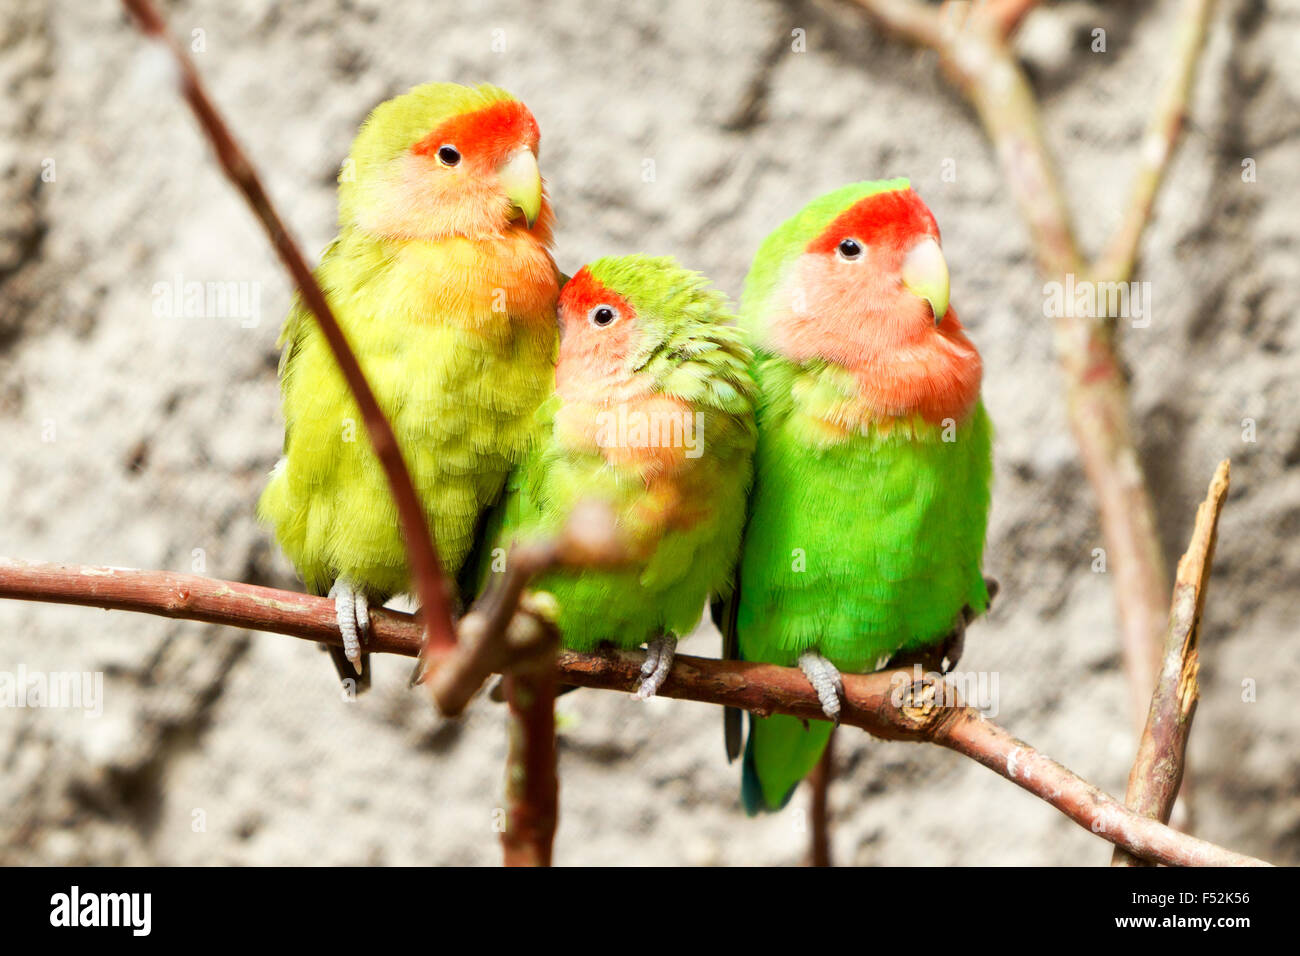 Family Of Loving Bird On A Branch Shot In Nature Environments - Stock Image